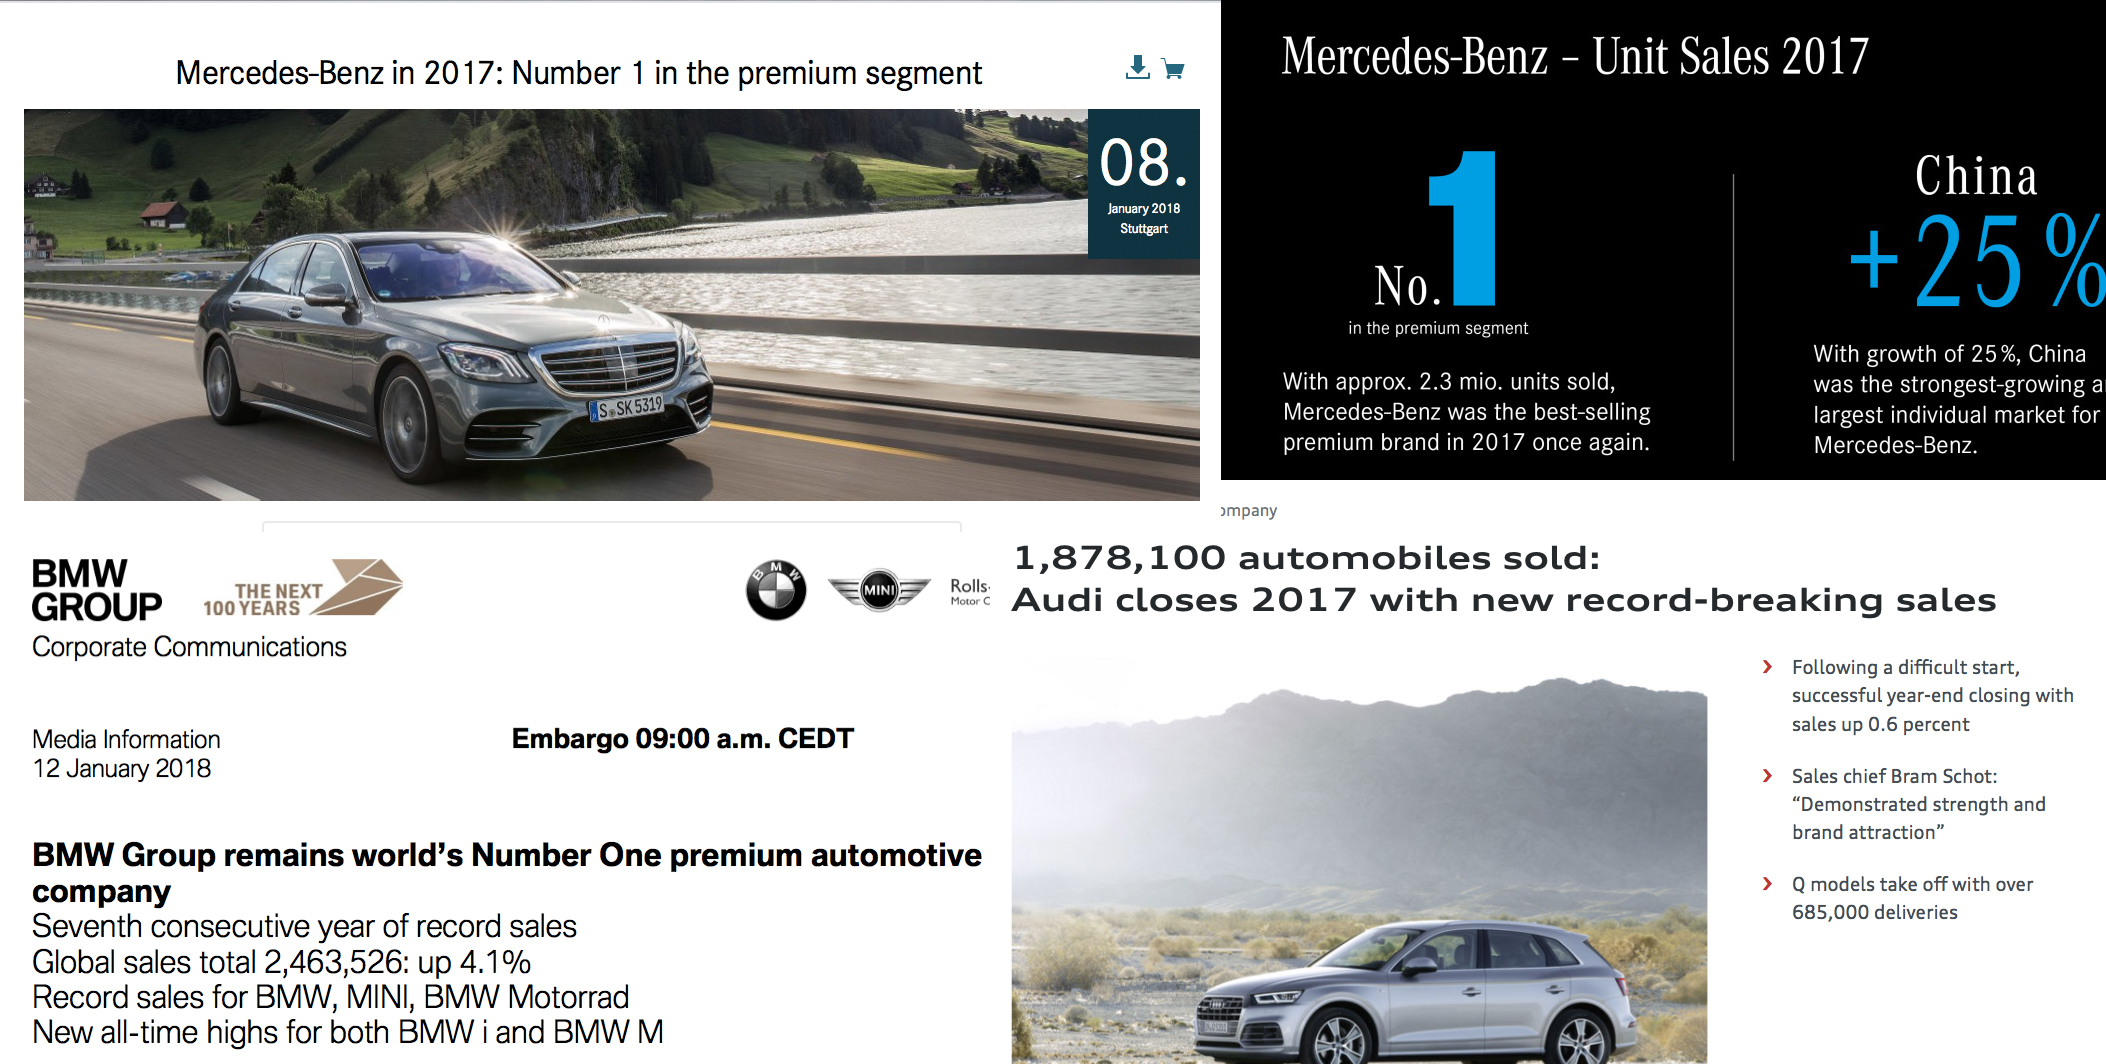 2017 Premium Brand Car Sales All Time Records For Mercedes Benz Bmw Audi But Who Came Out Tops Paultan Org